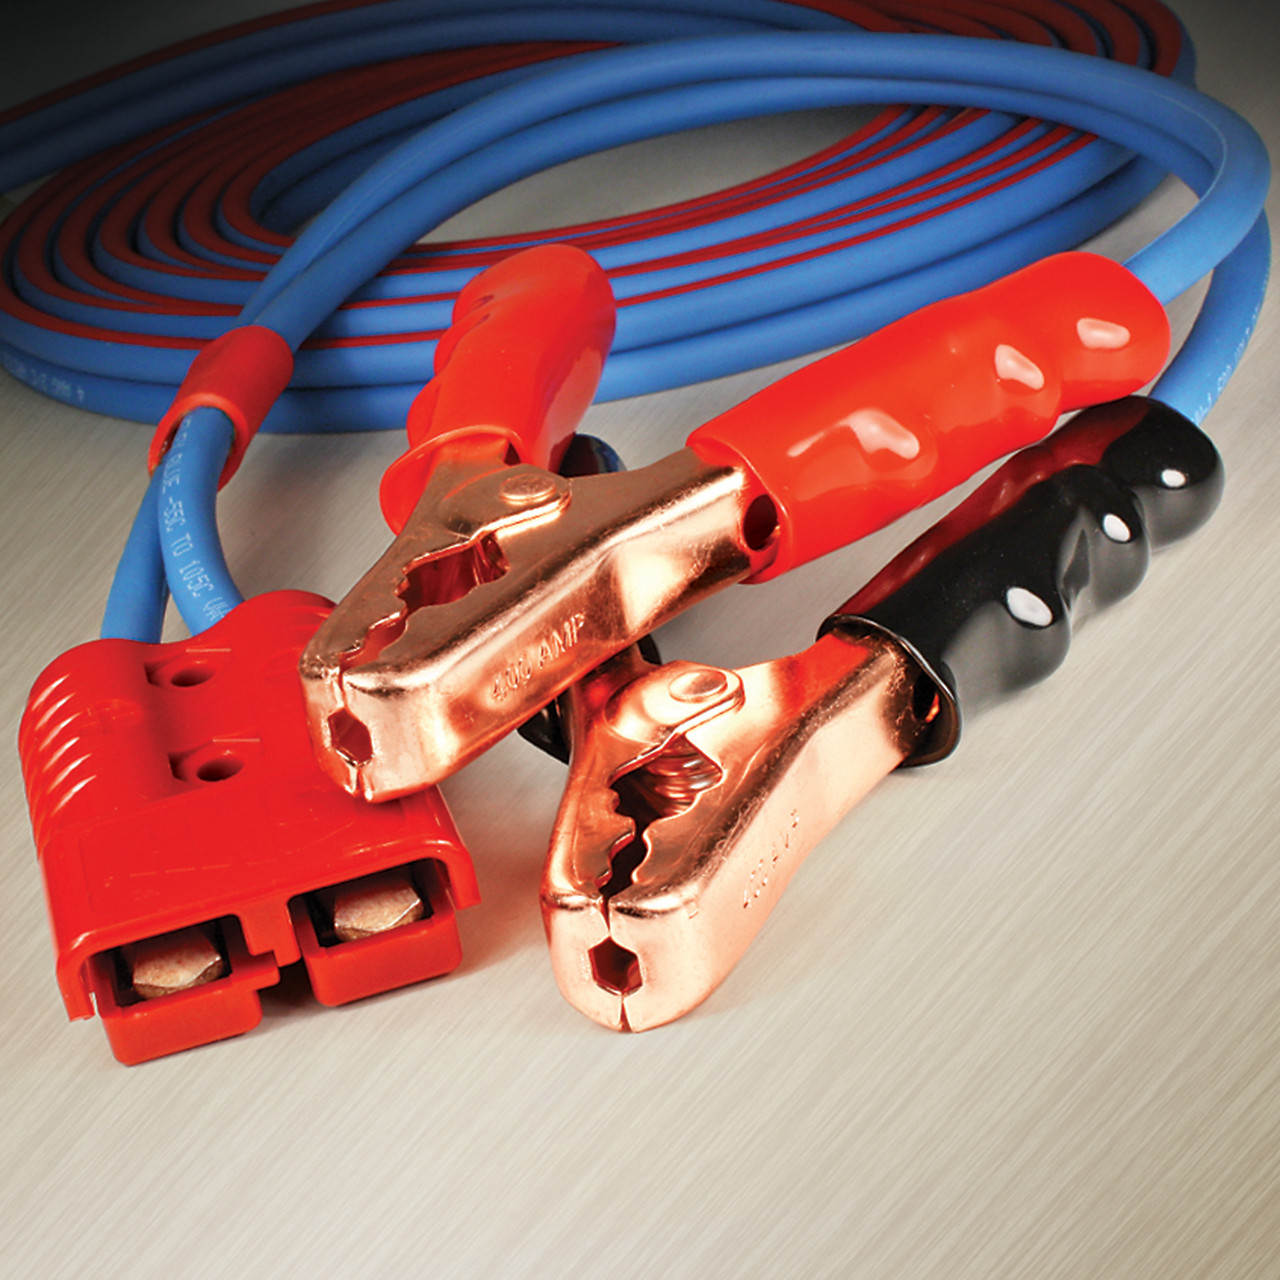 2 foot, 4 gauge Jumper Cable Clamp Adapter for use with 4 gauge Arctic Ultraflex Blue Harness and Fleet Booster Cable systems